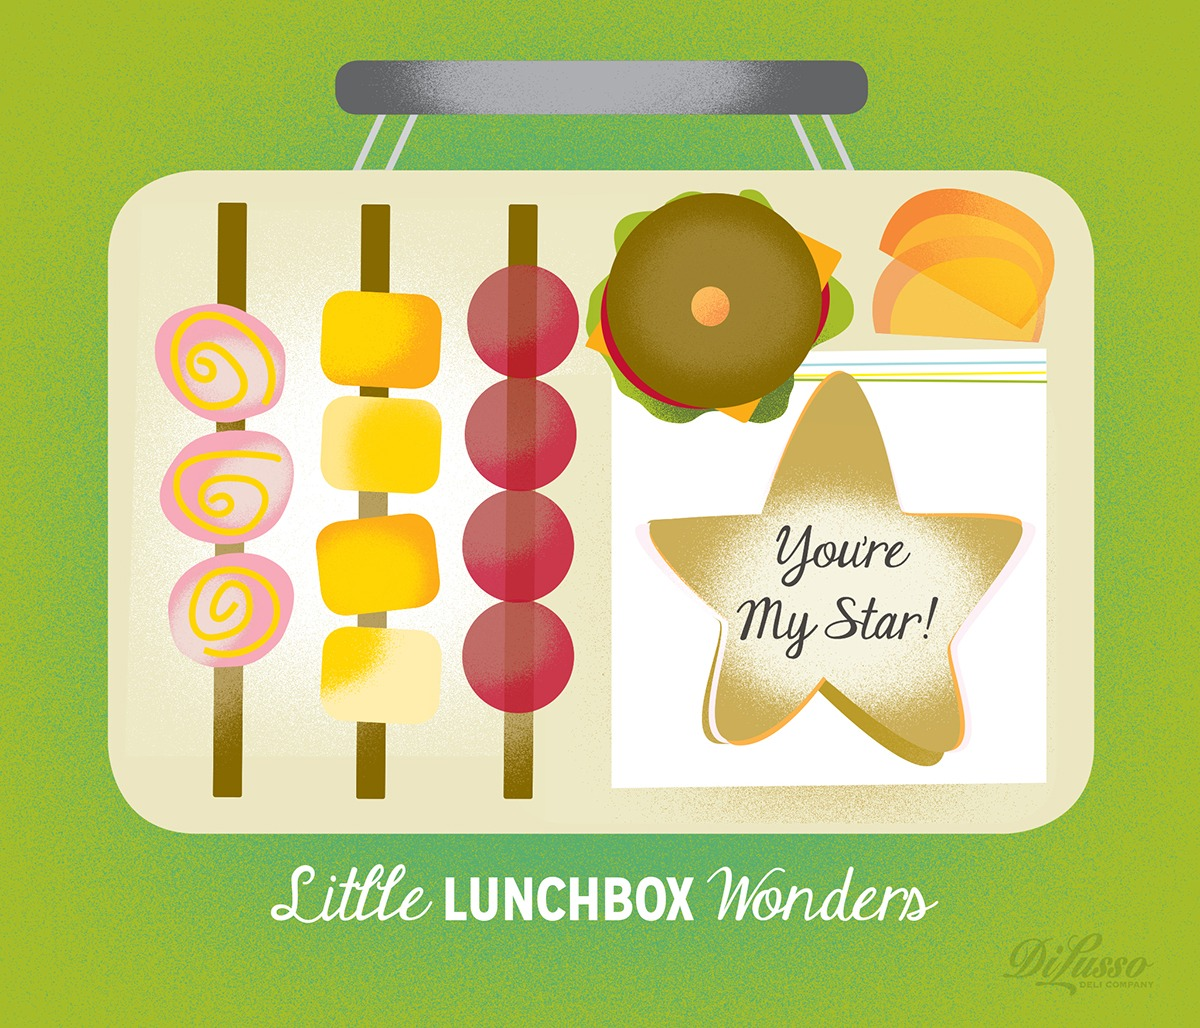 Lunchbox Wonders